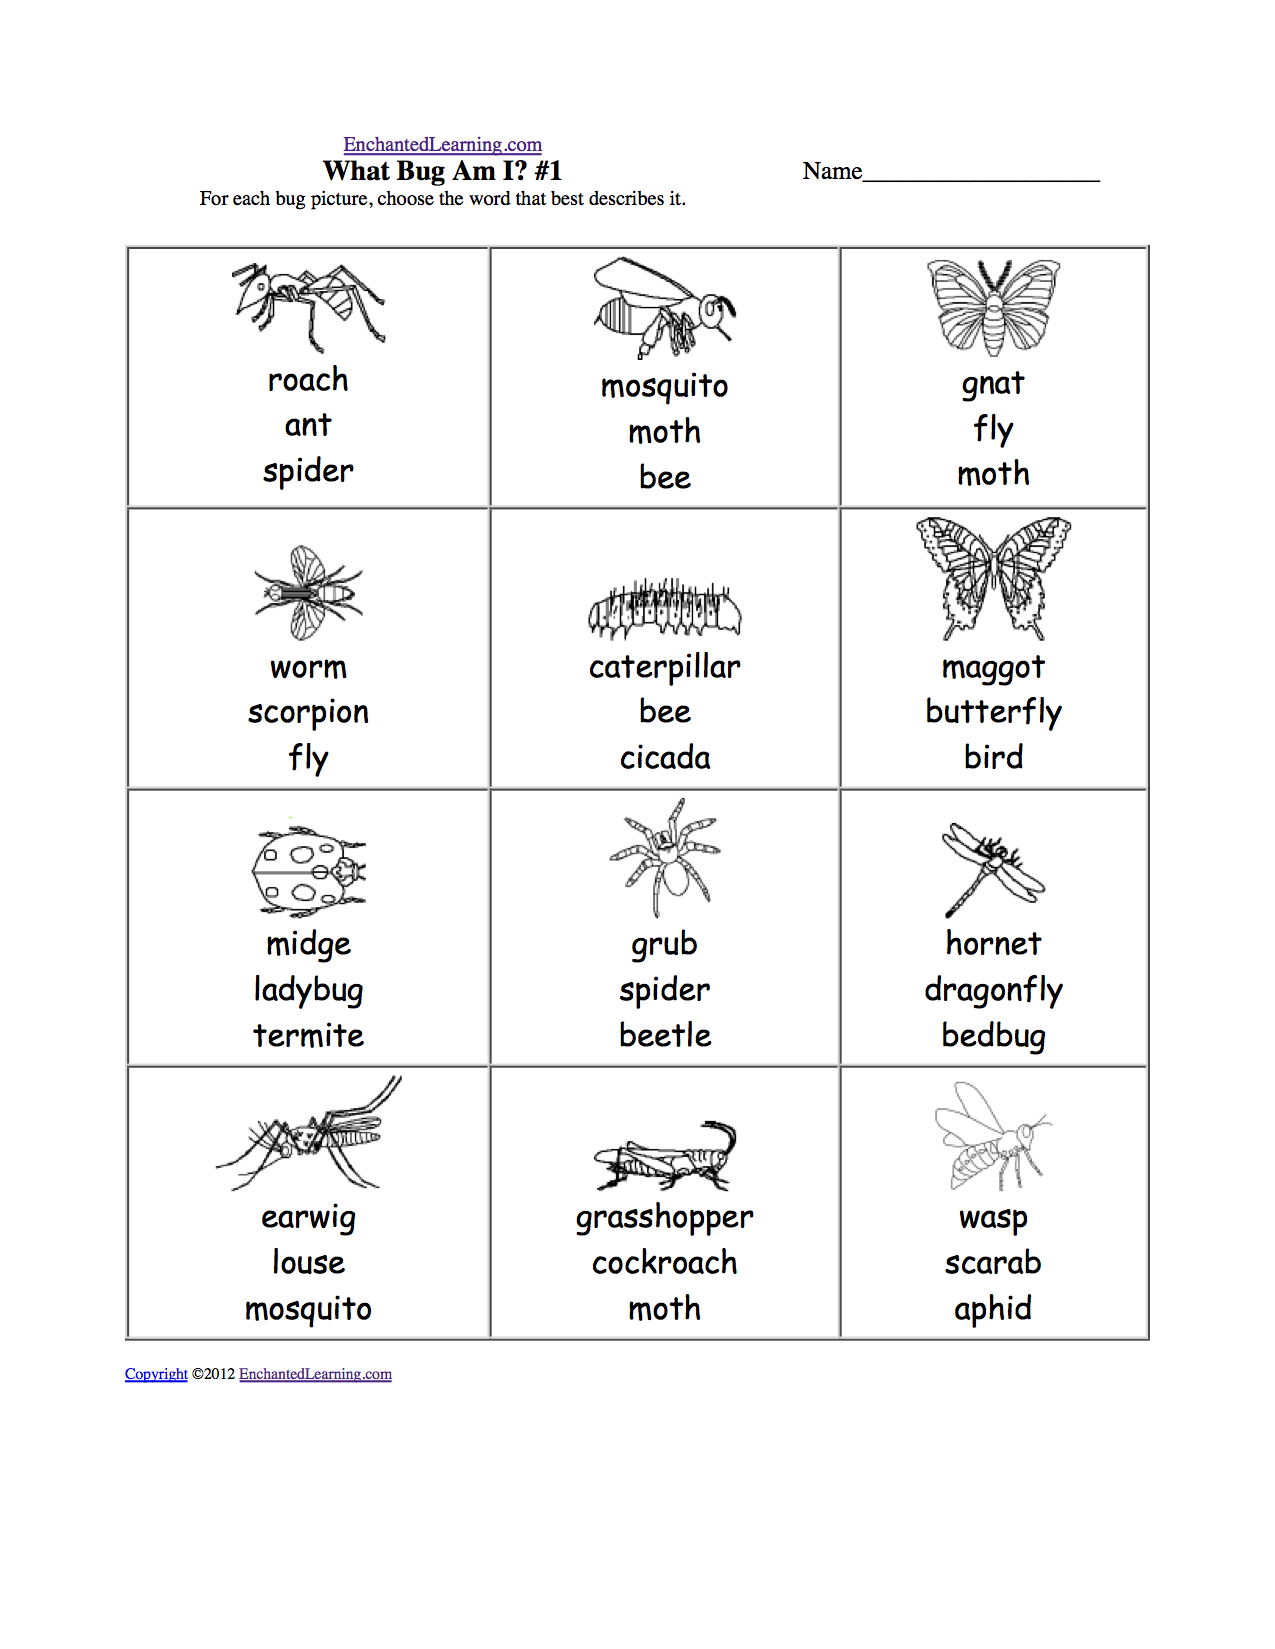 Aldiablosus  Pretty What Am I Worksheet Printouts  Enchantedlearningcom With Engaging Layers Of The Skin Worksheet Besides Math Worksheets For Grade  Multiplication Furthermore Worksheet On Slope Intercept Form With Adorable Adjectives For First Grade Worksheets Also Worksheets On Similes In Addition Area And Perimeter Of A Parallelogram Worksheet And Alphabet Worksheet Az As Well As D Shapes Worksheet Ks Additionally Animals That Hibernate Worksheet From Enchantedlearningcom With Aldiablosus  Engaging What Am I Worksheet Printouts  Enchantedlearningcom With Adorable Layers Of The Skin Worksheet Besides Math Worksheets For Grade  Multiplication Furthermore Worksheet On Slope Intercept Form And Pretty Adjectives For First Grade Worksheets Also Worksheets On Similes In Addition Area And Perimeter Of A Parallelogram Worksheet From Enchantedlearningcom